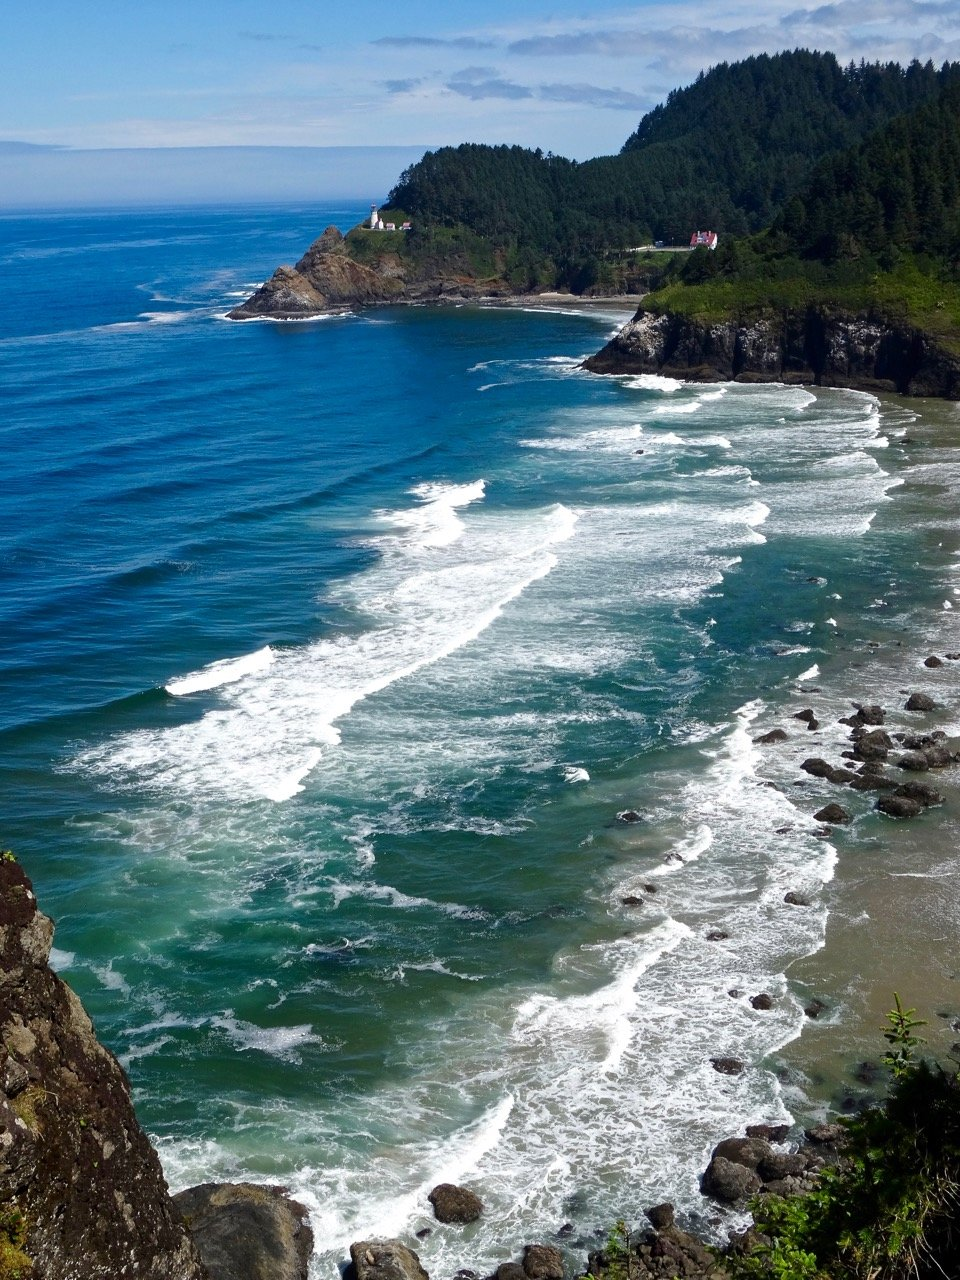 Beach View of Heceta Head Lighthouse in Promontory in Distance